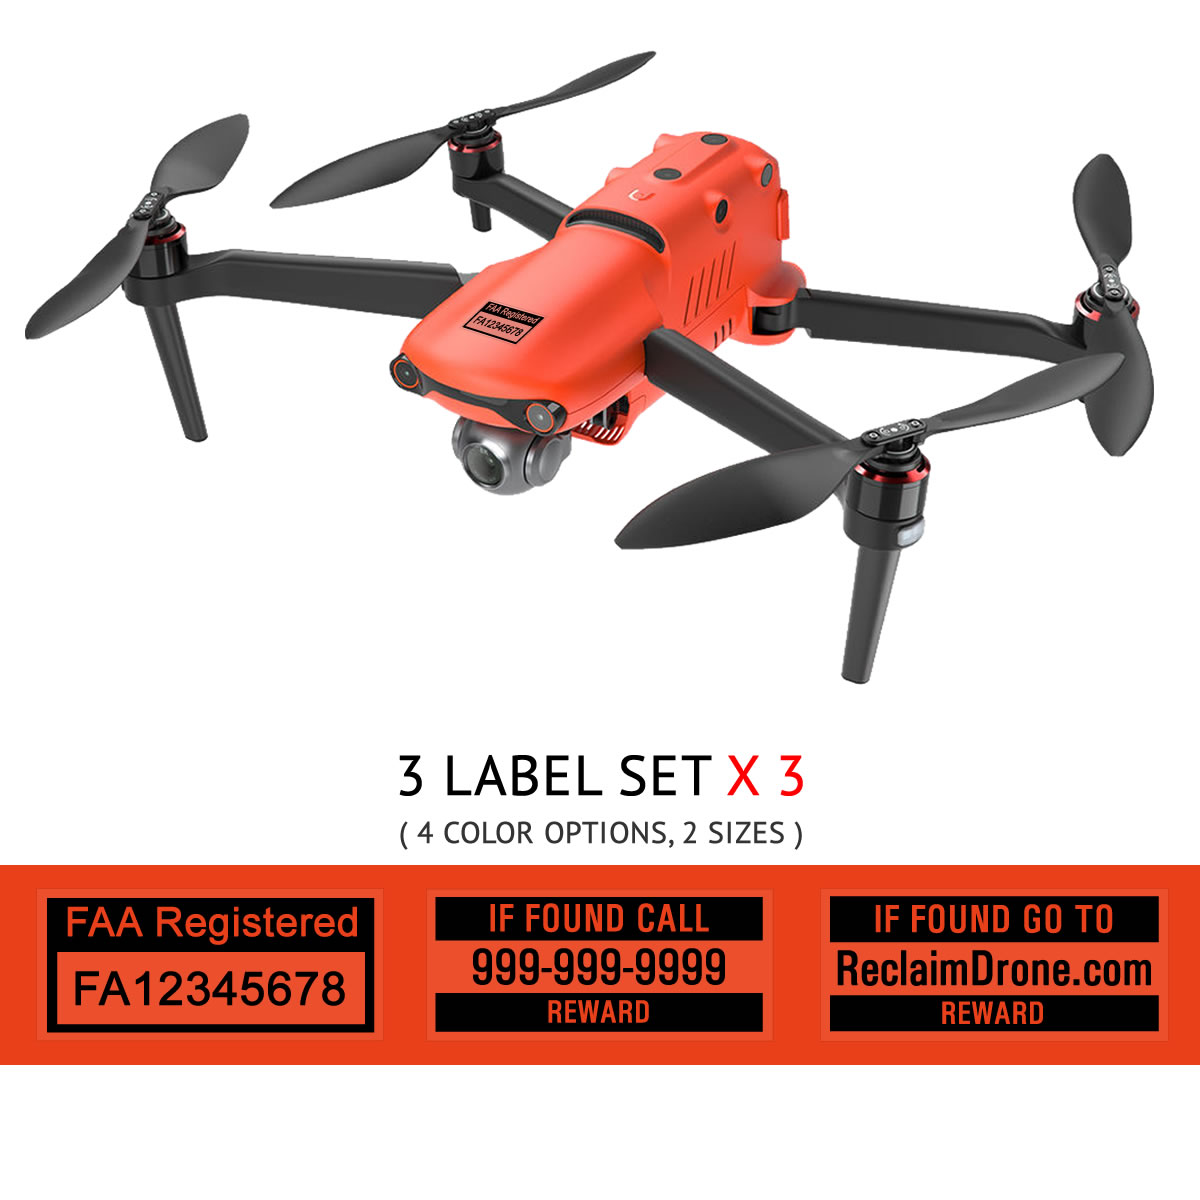 Autel EVO 2 – FAA Registration Labels, FAA and Phone number in black on clear background